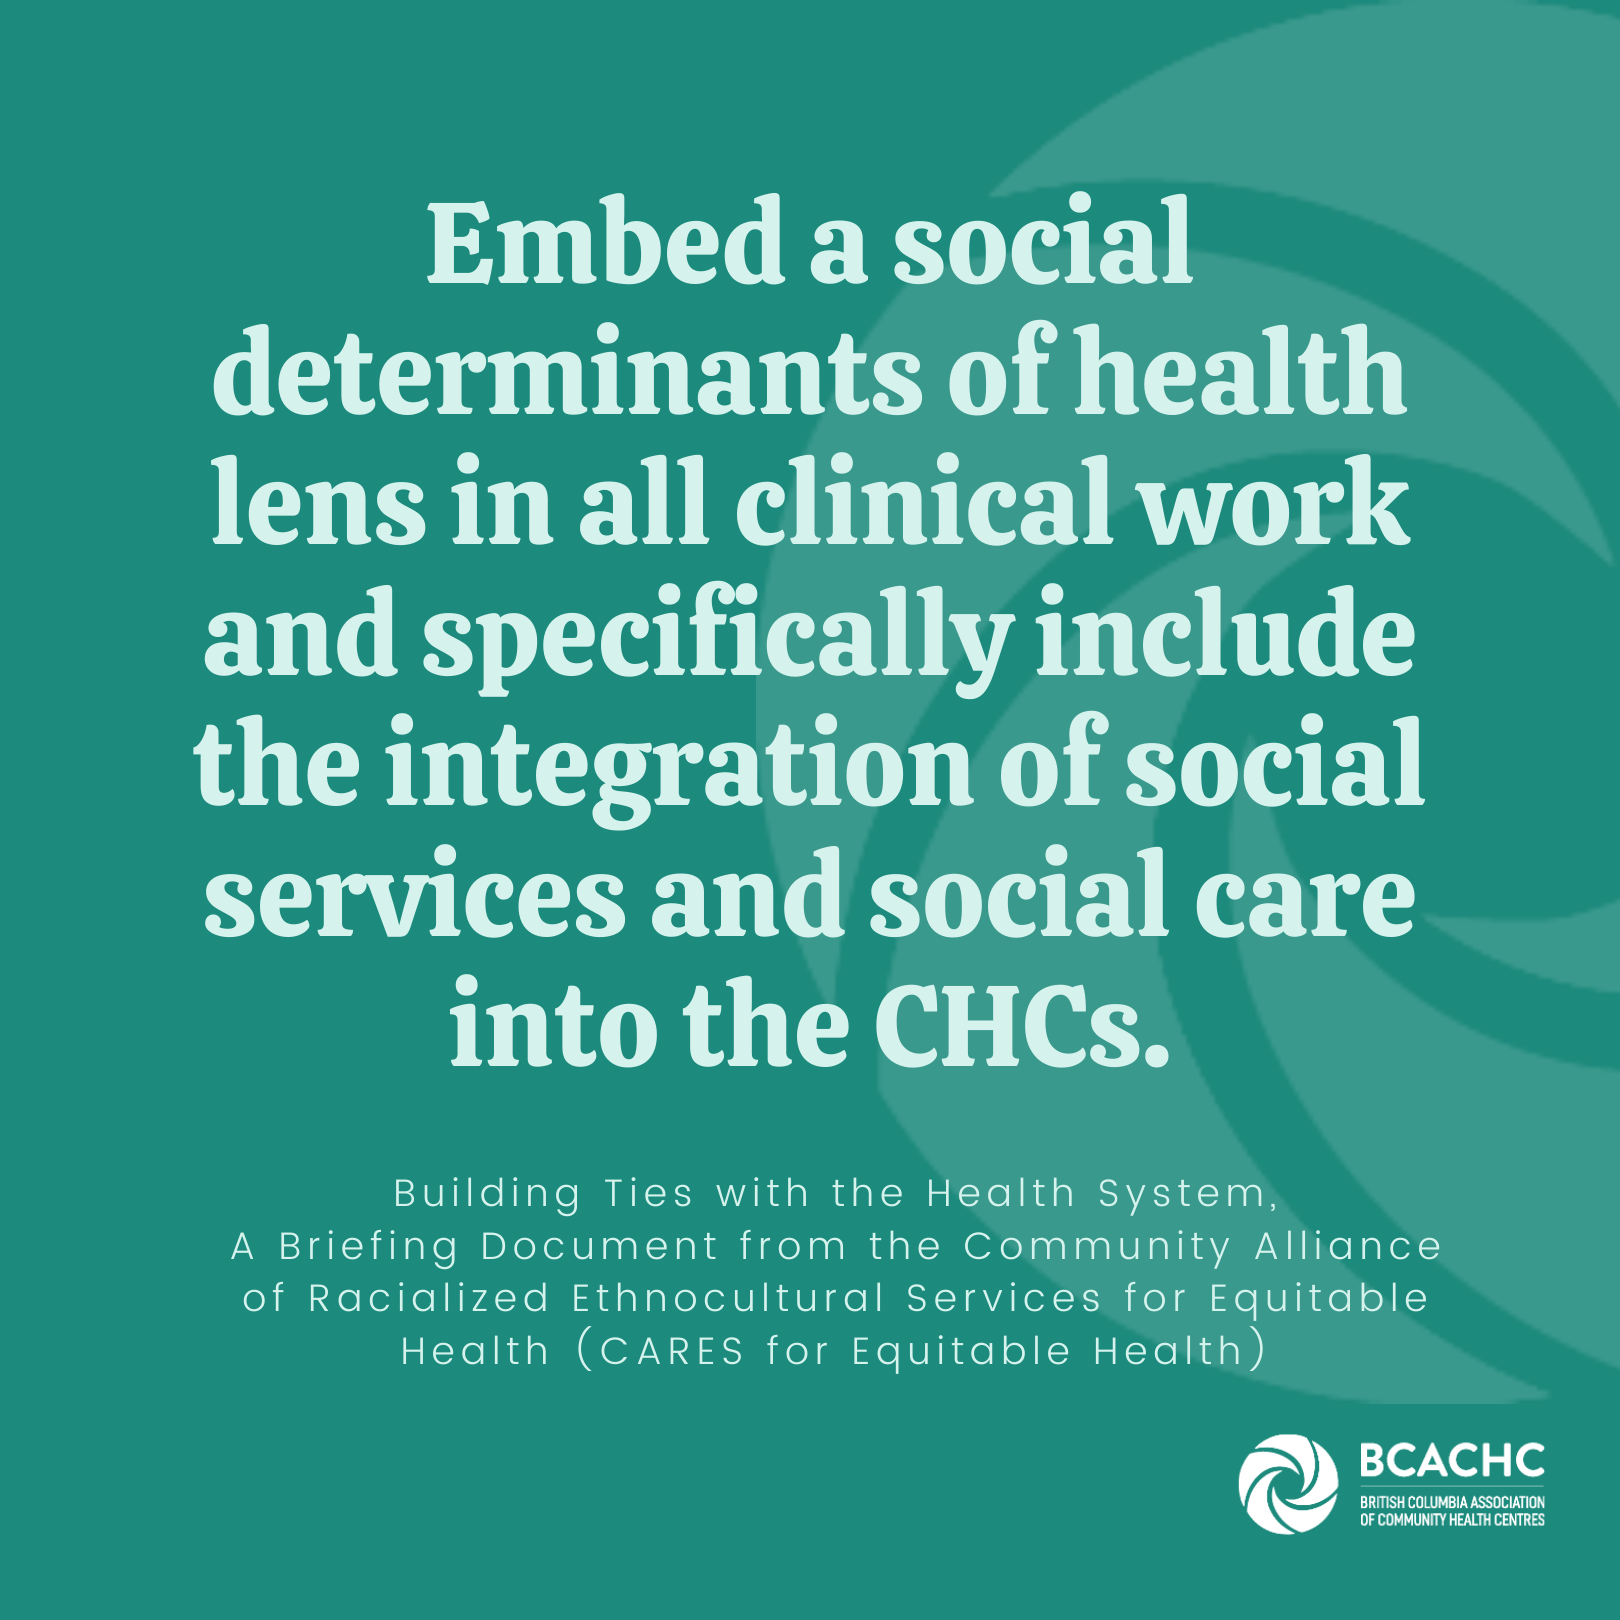 Embed a social determinants of health lens in all clinical work and specifically include the integration of social services and social care into the CHCs.